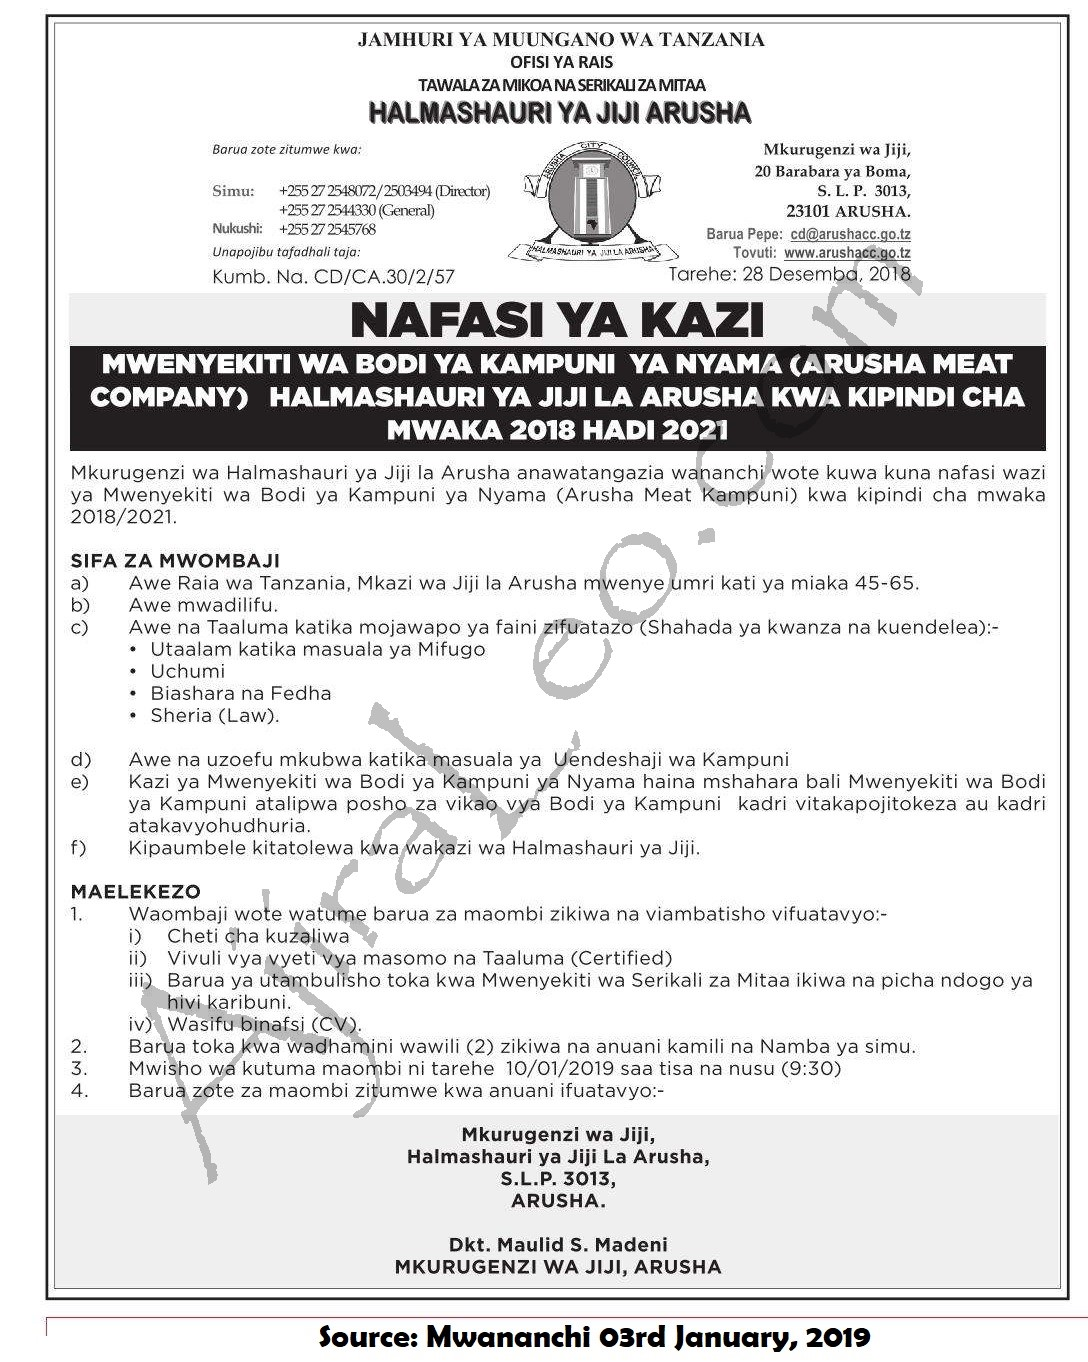 New Government Job at Arusha City Council | Deadline 10th January